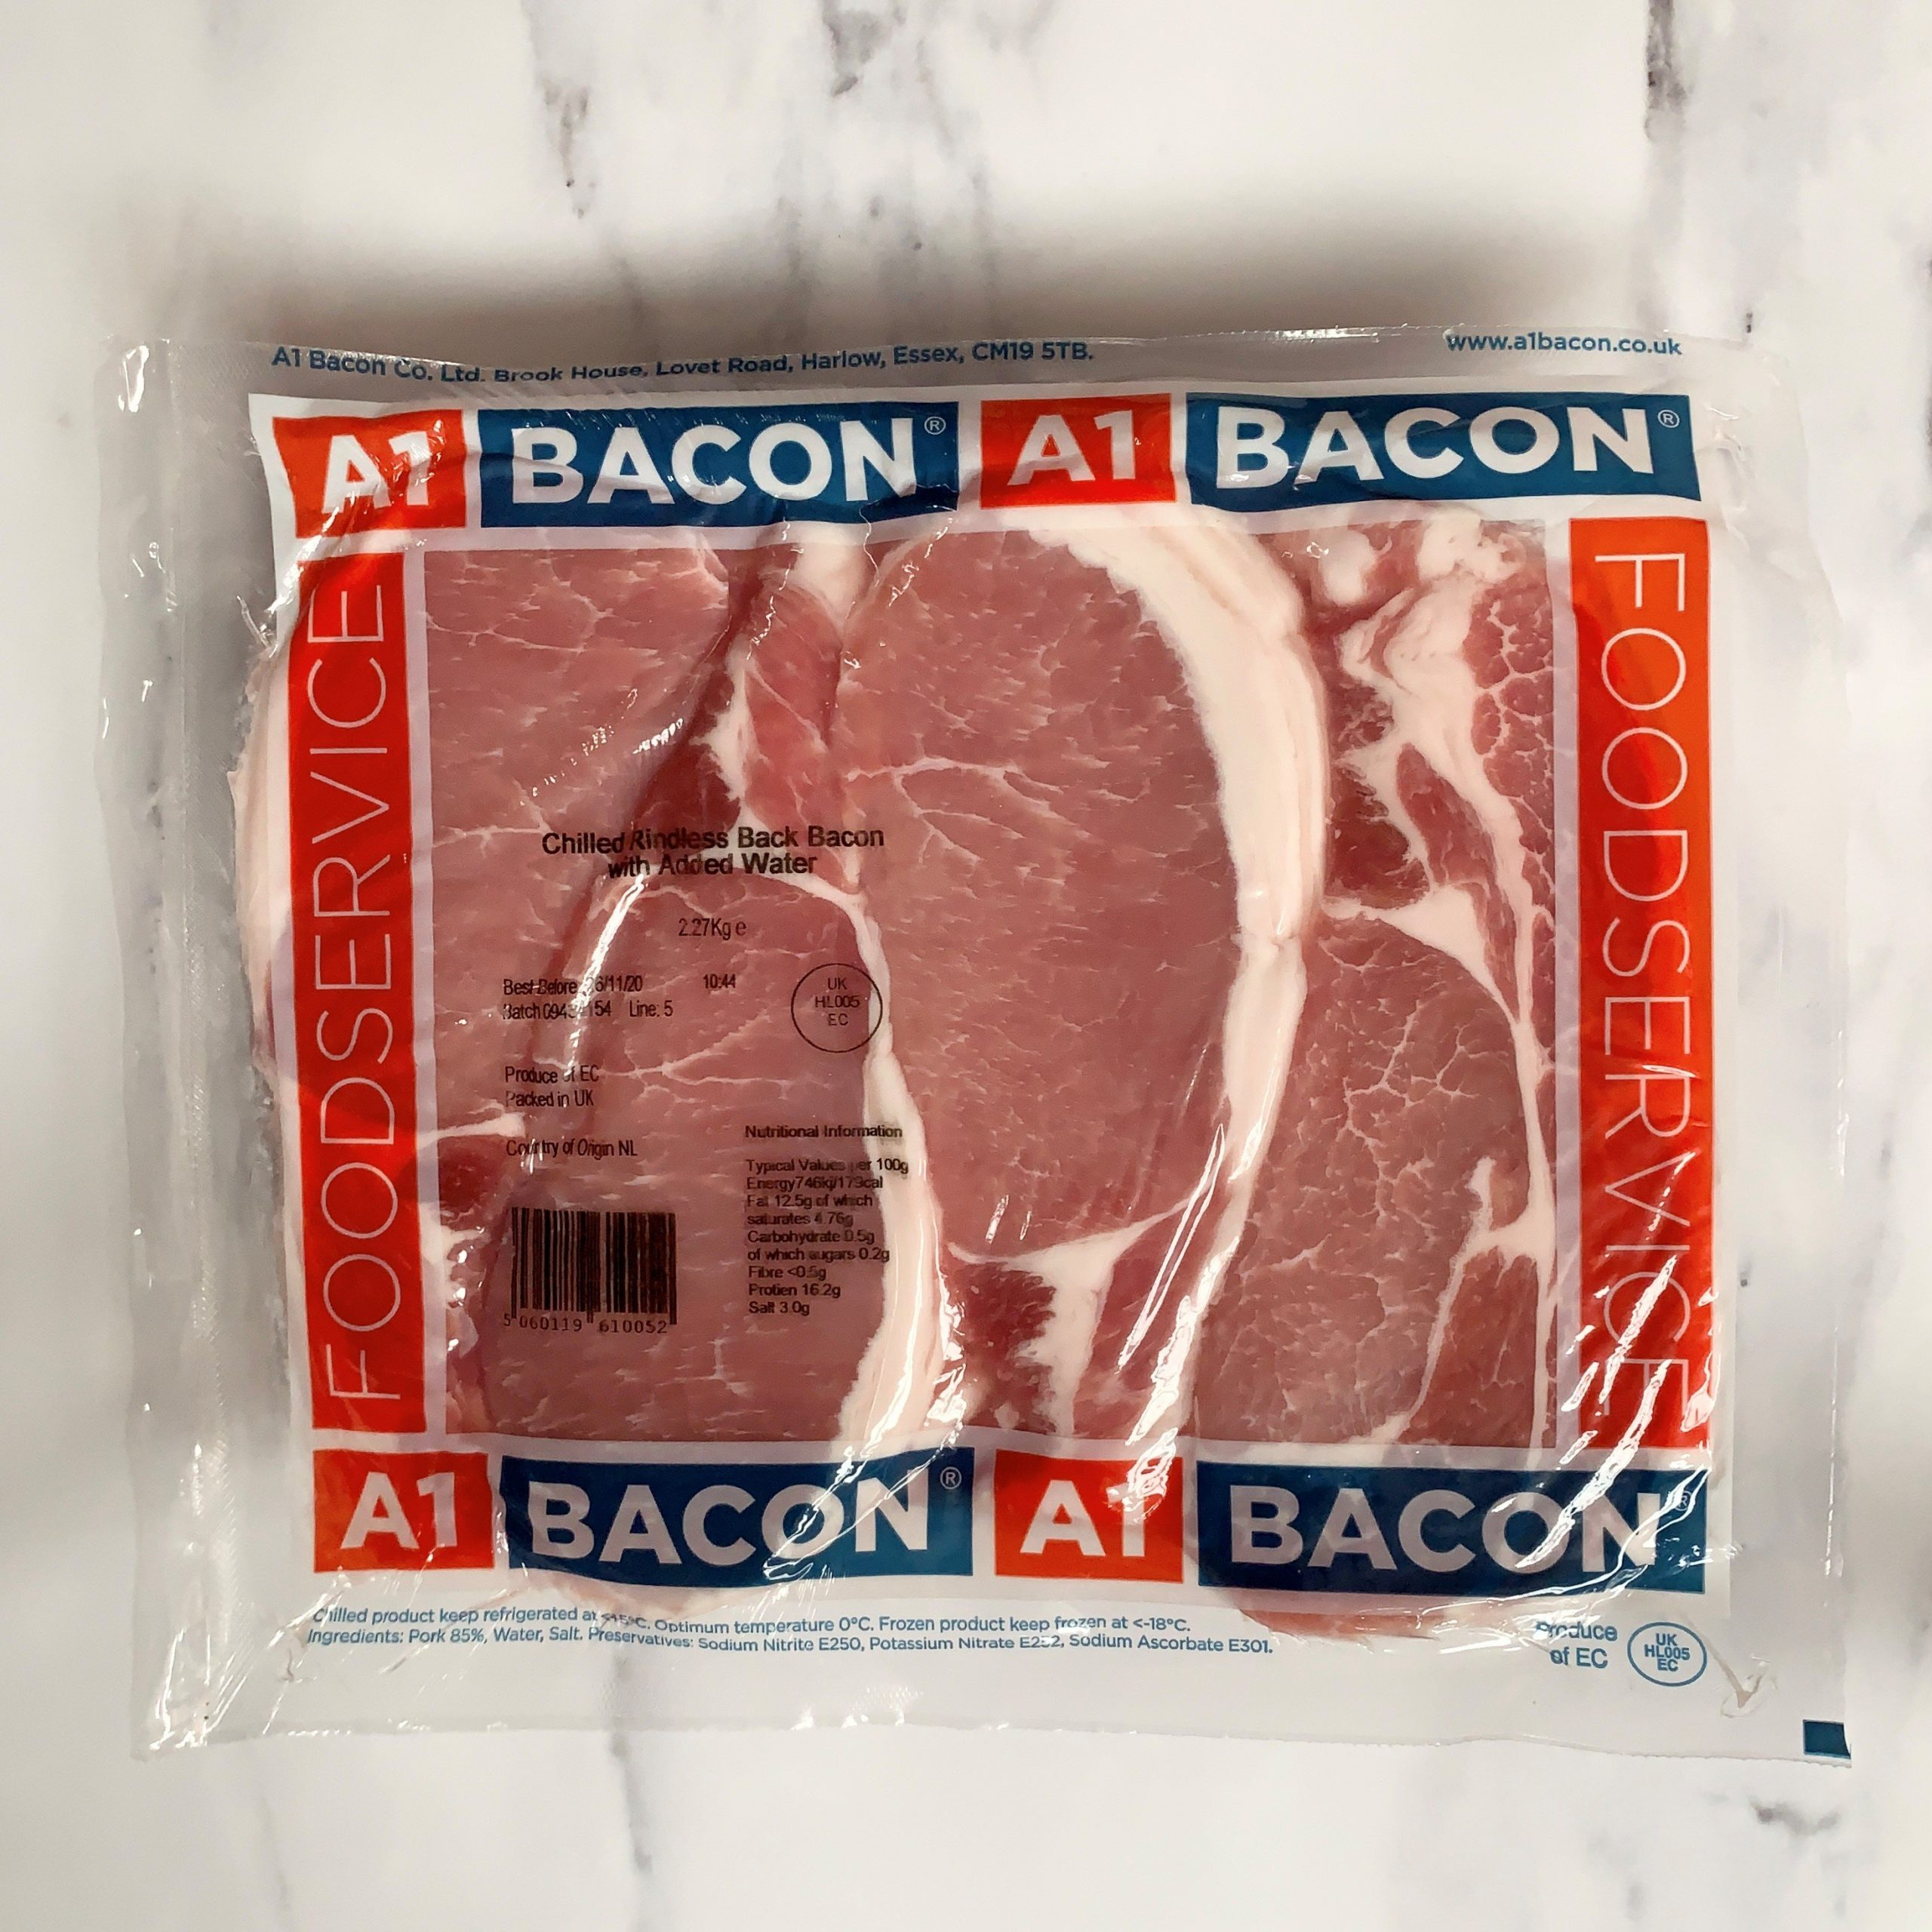 A1 Unsmoked Back Bacon – 2.27kg